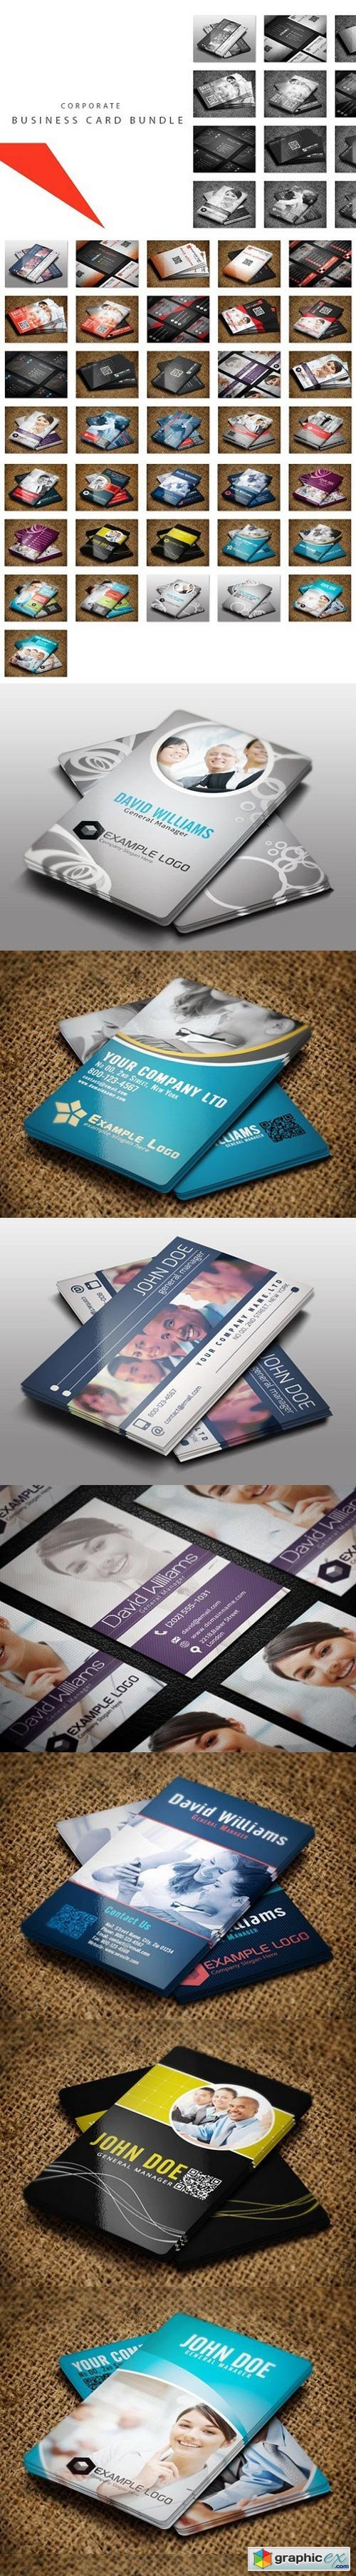 16x Corporate Business Cards